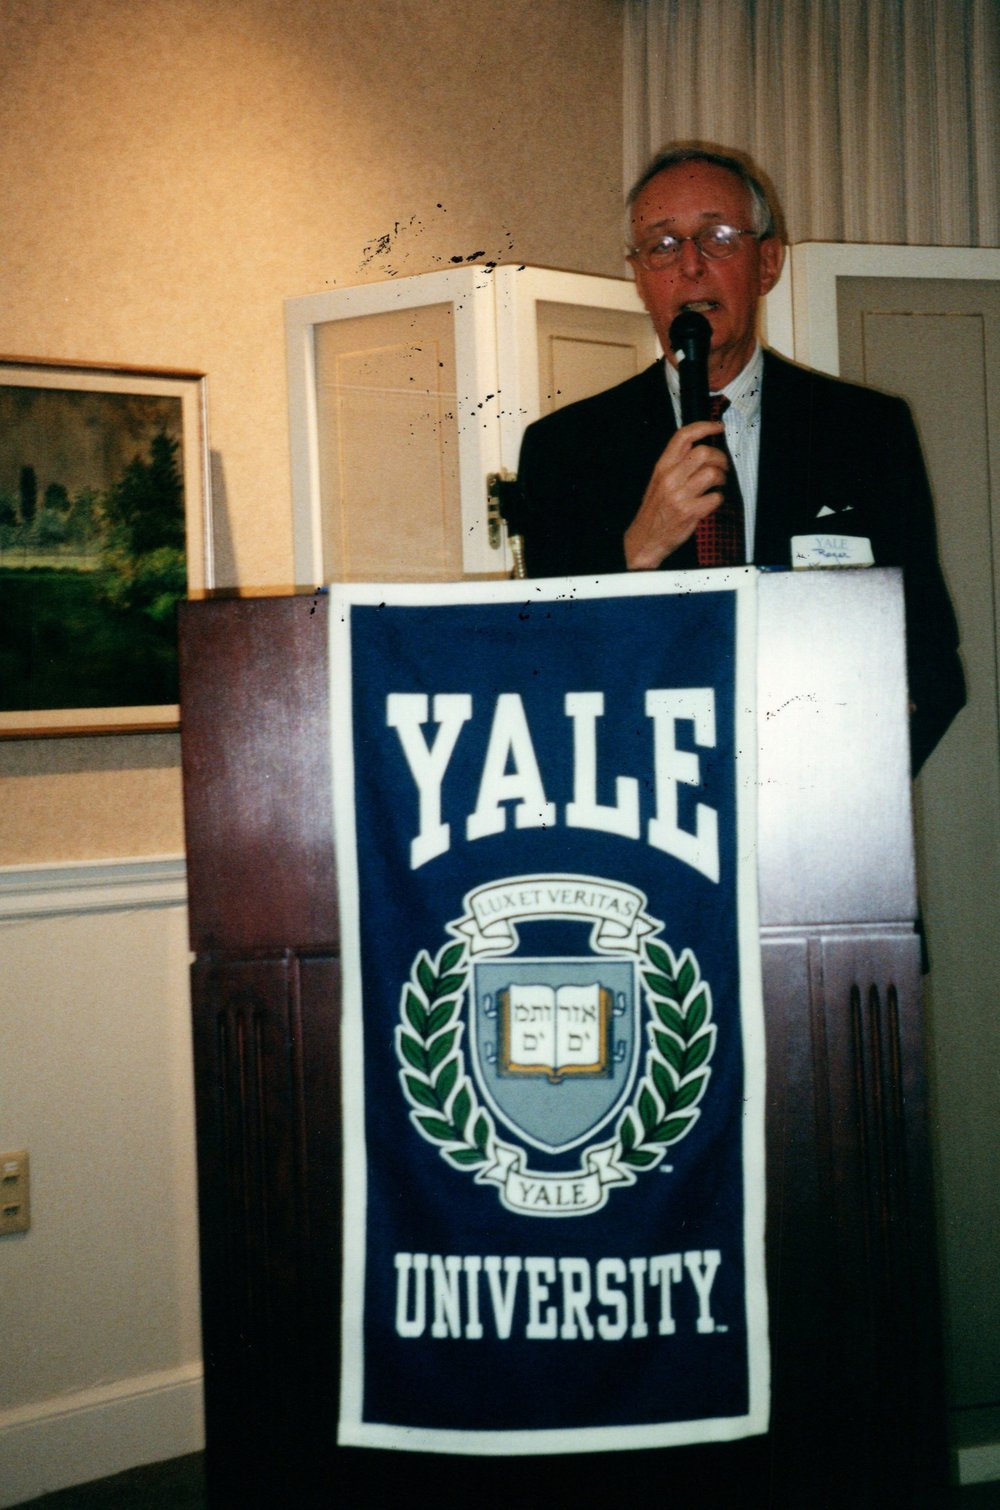 1_15_2001 - 2ND TERCENTENNIAL SPEAKER TRIBUTE PROGRAM HOSTED BY NORTHERN TRUST CO. 12.jpg